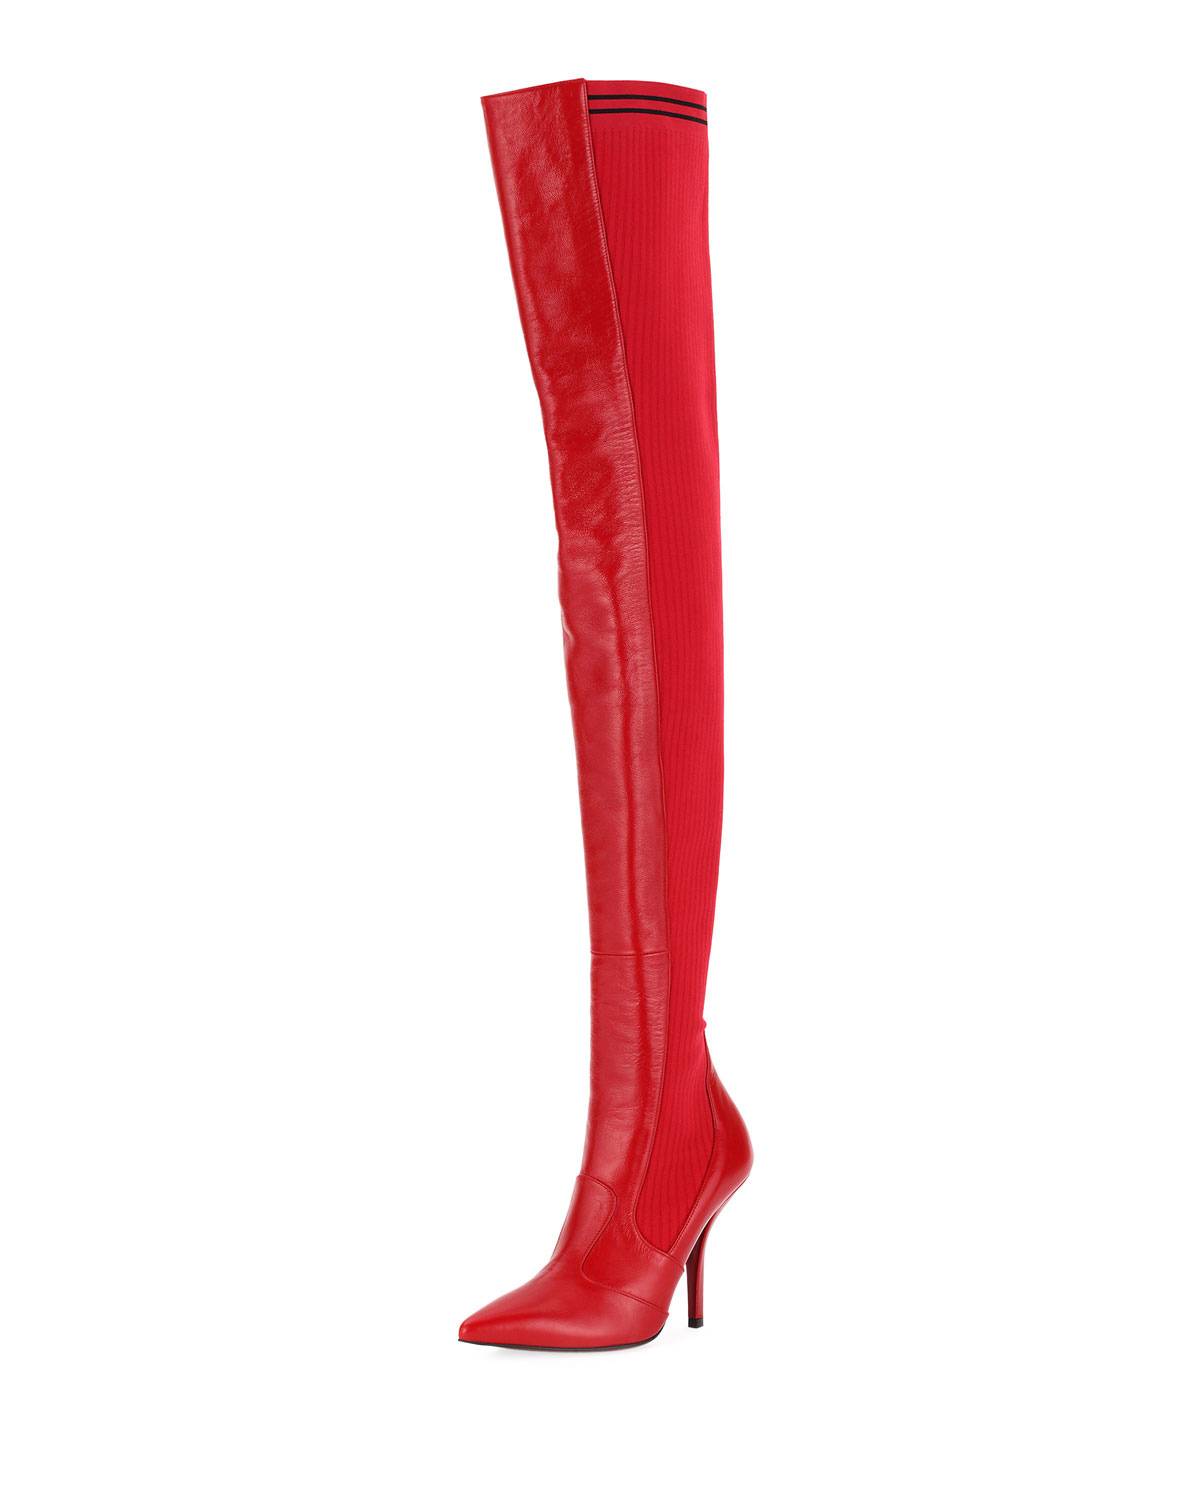 071c582d4 Fendi Leather Over-the-Knee Sock Boot